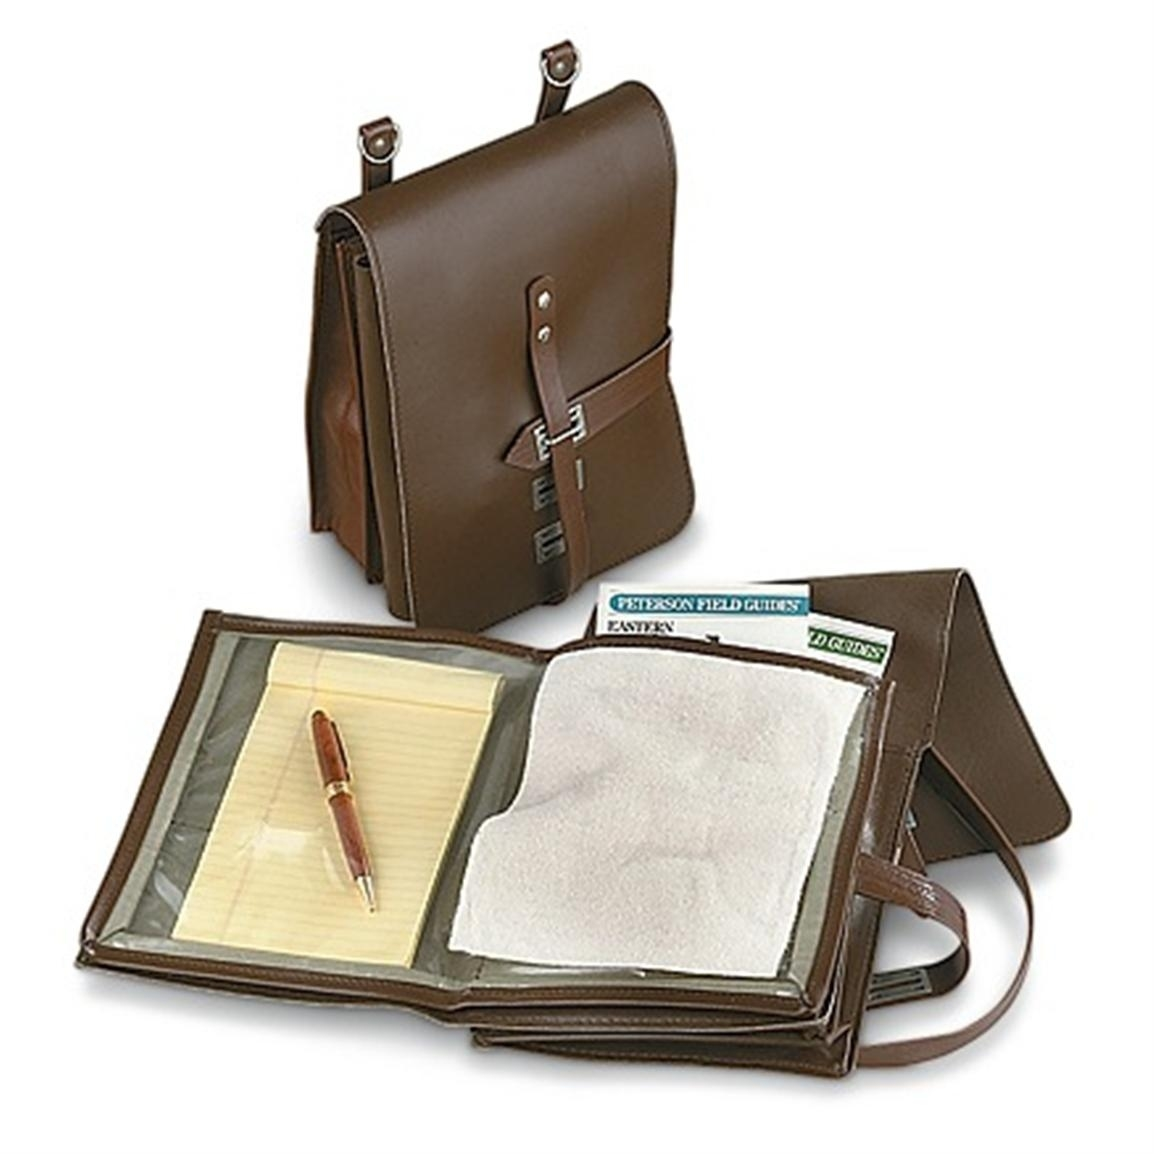 6 New East German Military Map Cases, Brown - 192154, Map Cases At with East German Map Case